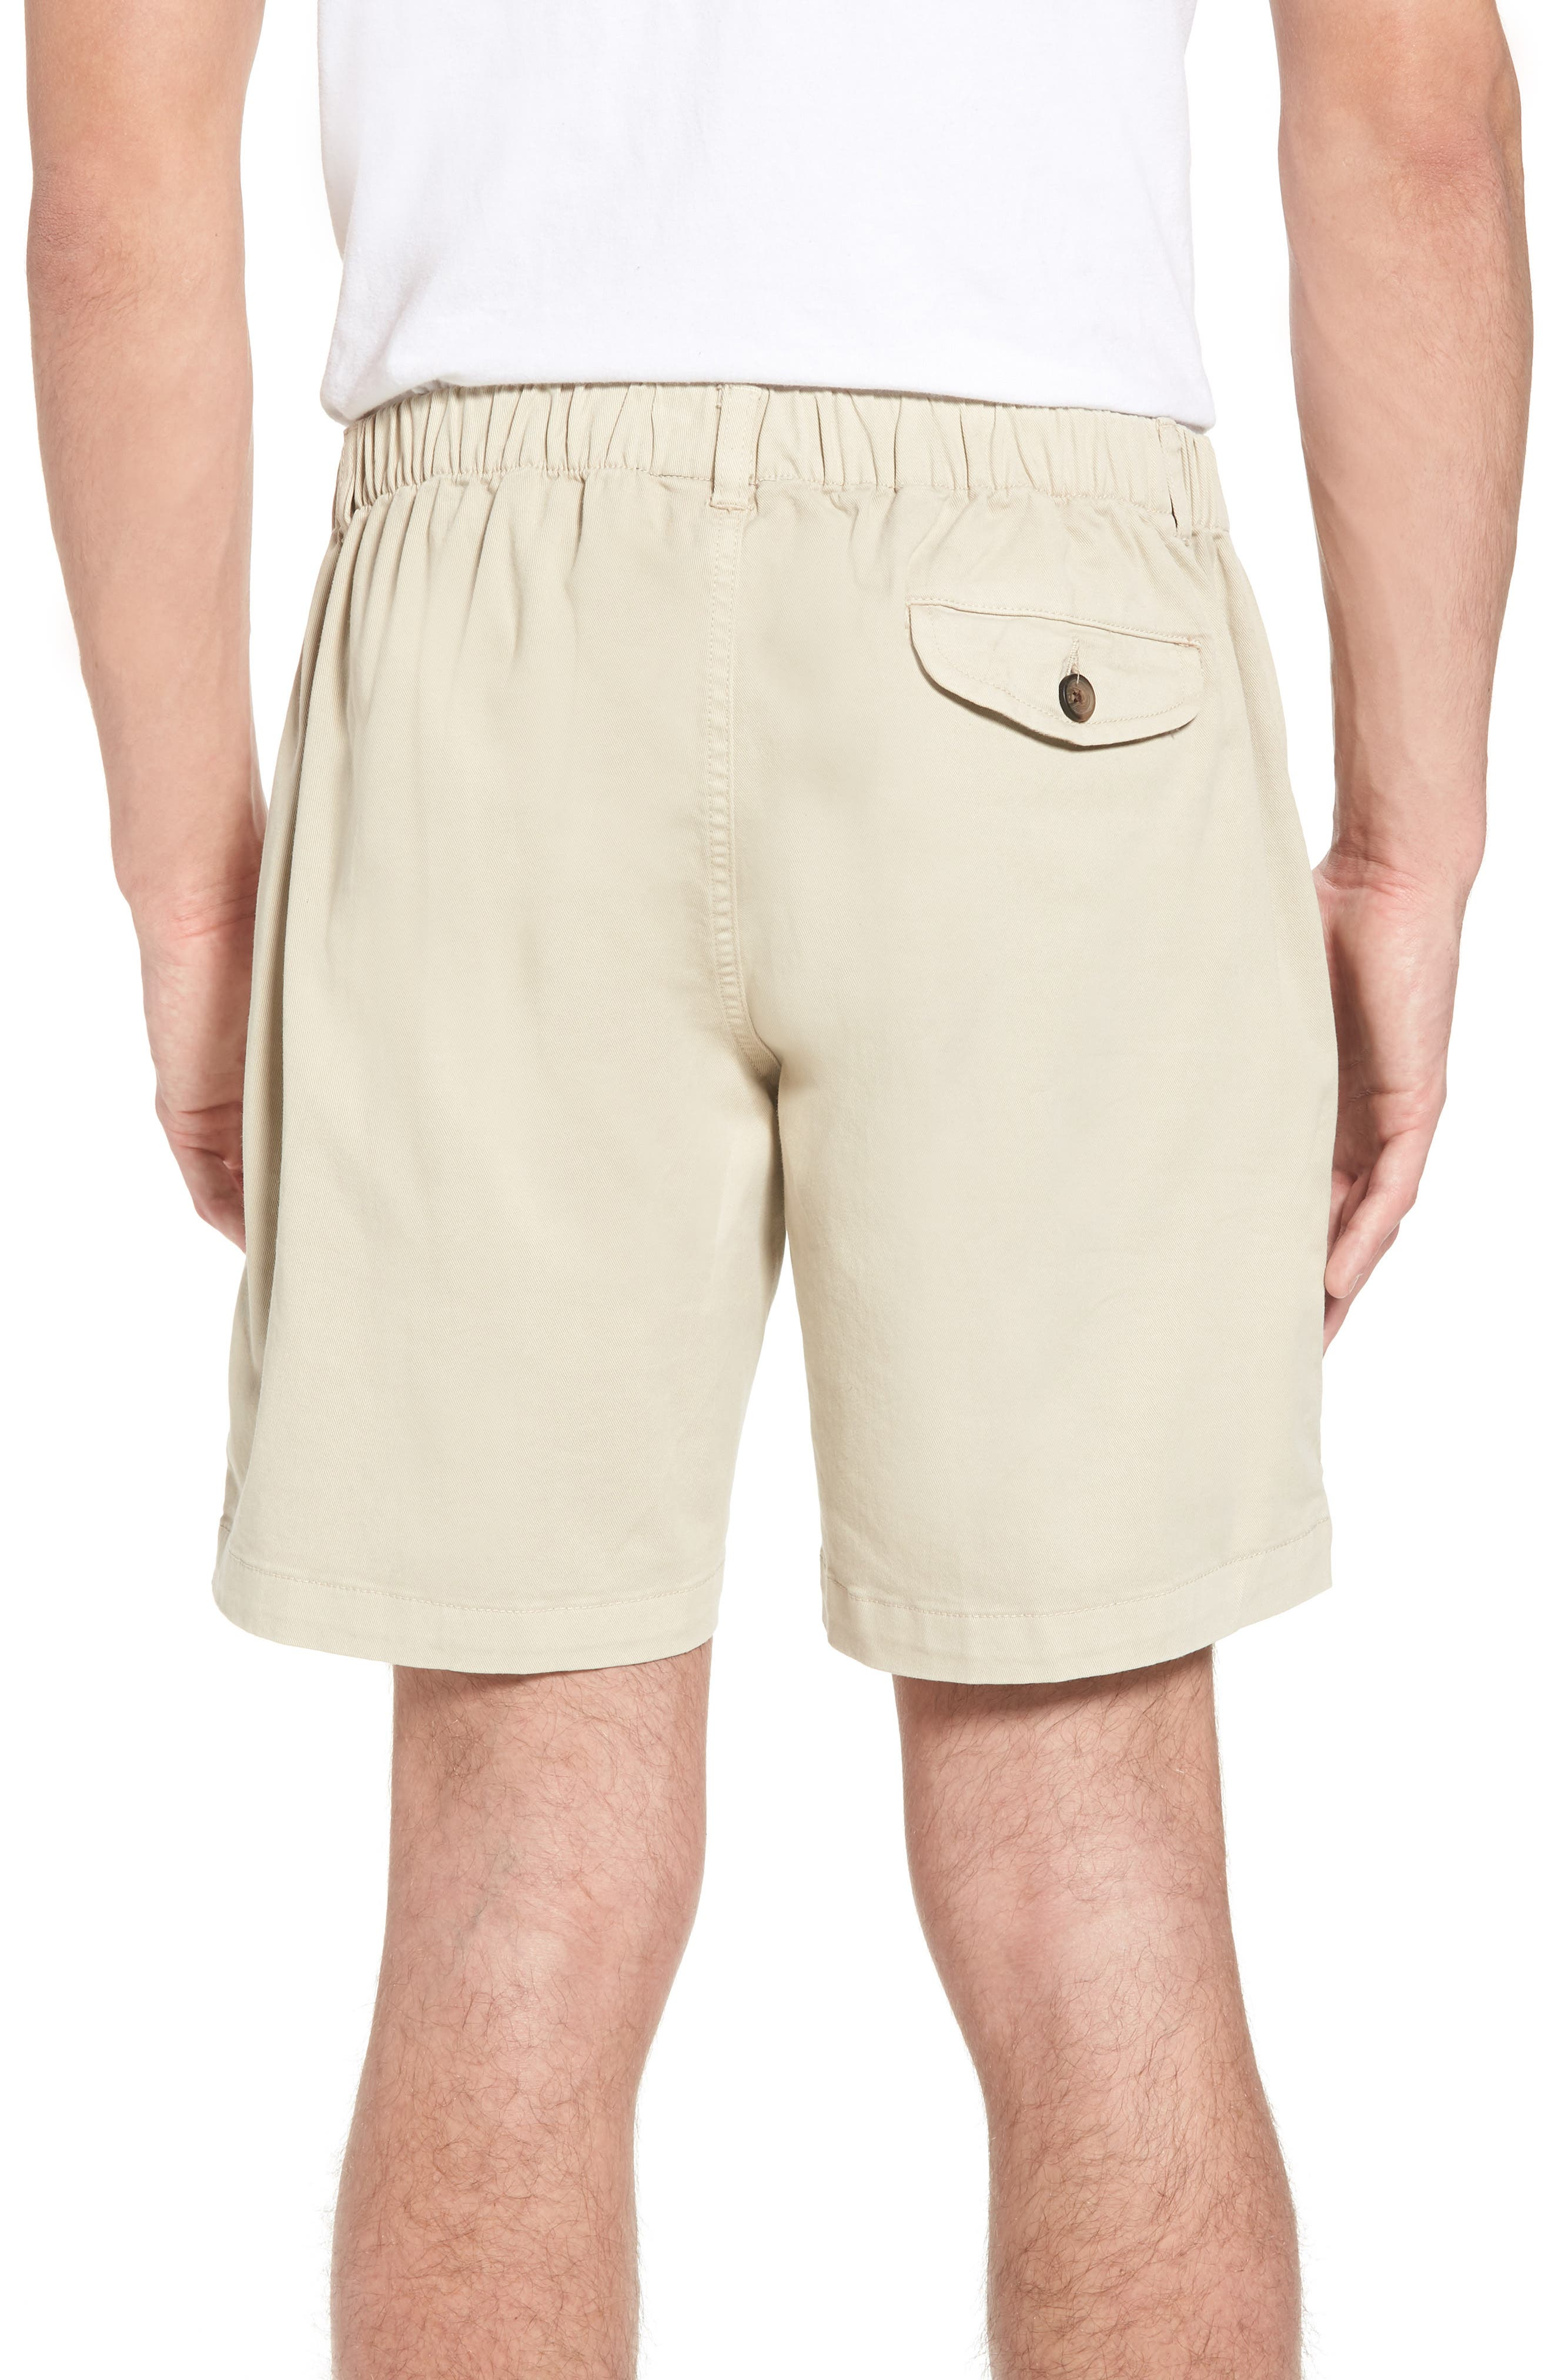 7in Snappers Elastic Waist Shorts,                             Alternate thumbnail 2, color,                             STONE